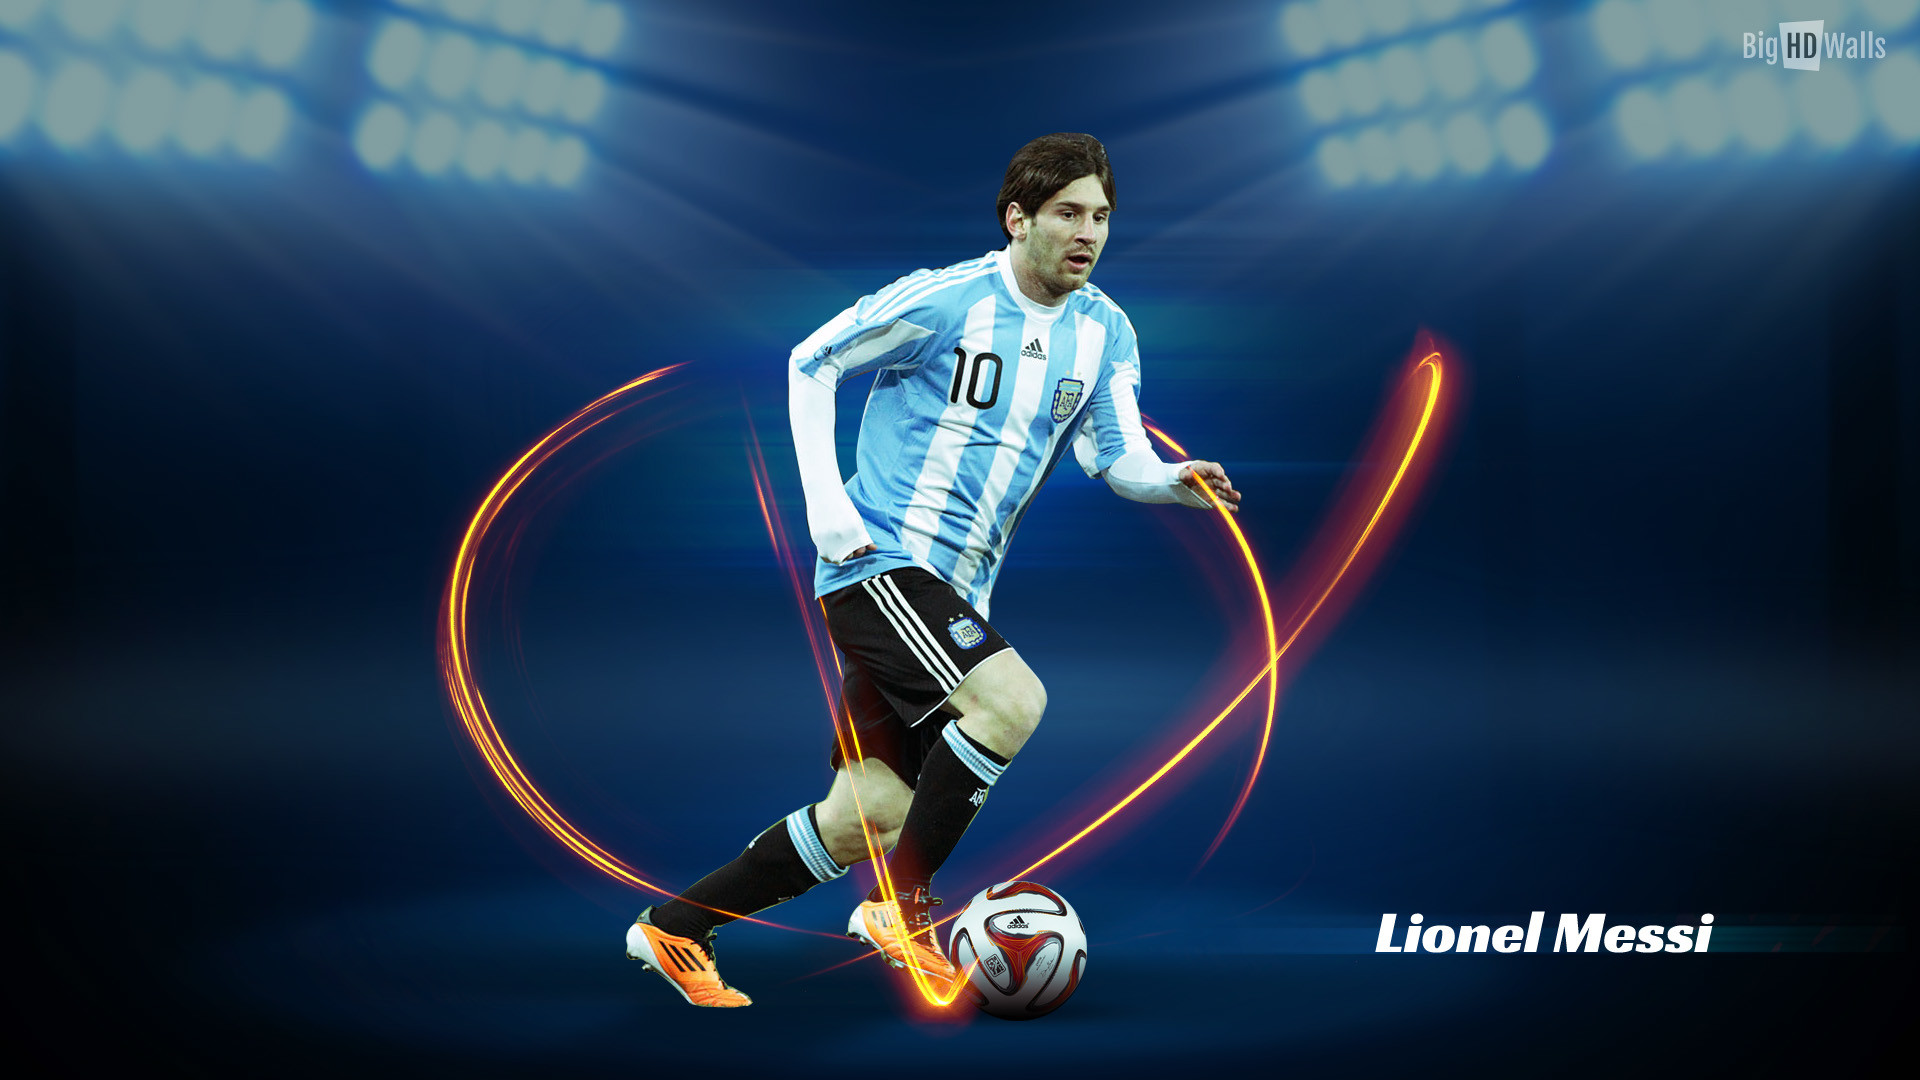 10 Mejores Apps De Wallpapers Hd Para Android 2018: Lionel Messi 2018 Wallpapers (80+ Images